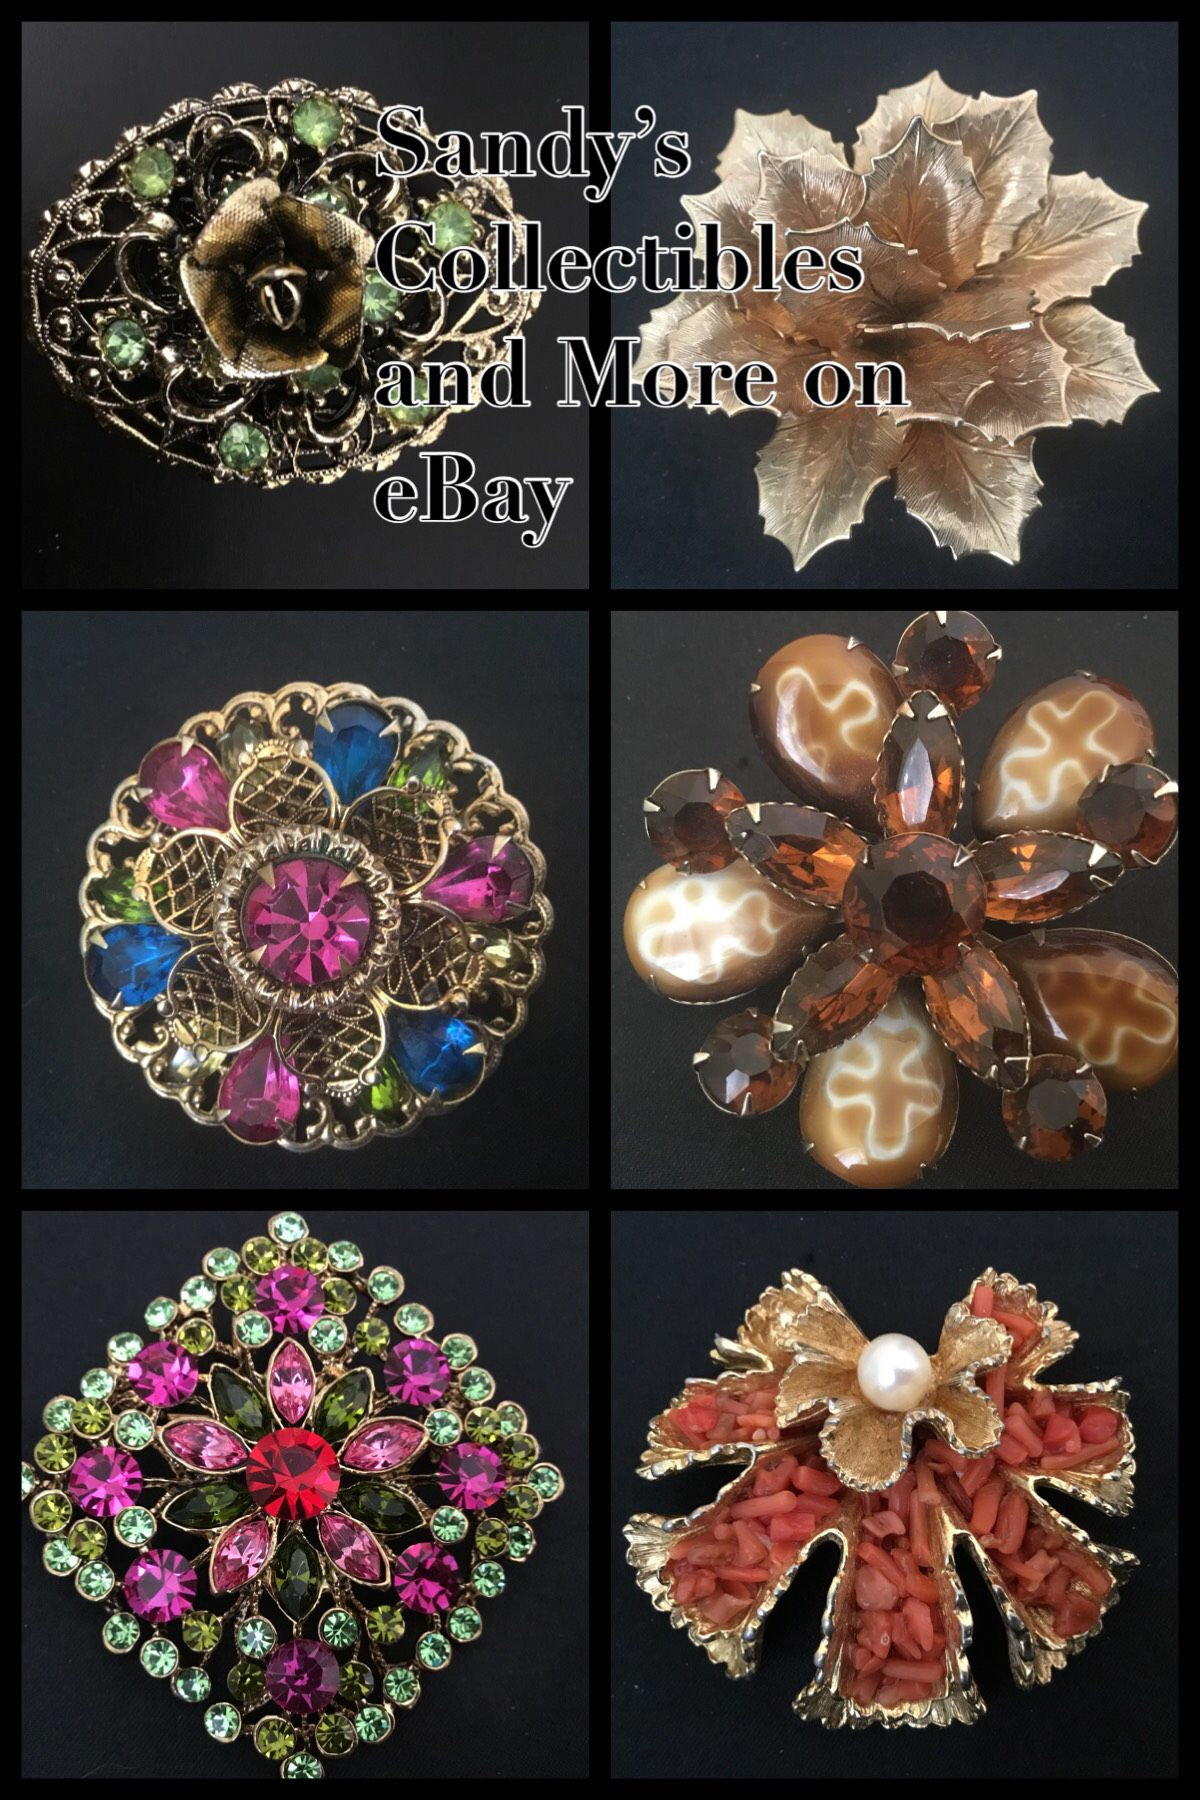 Pin by Sandy Faust on Sandy's Collectibles and More Ebay